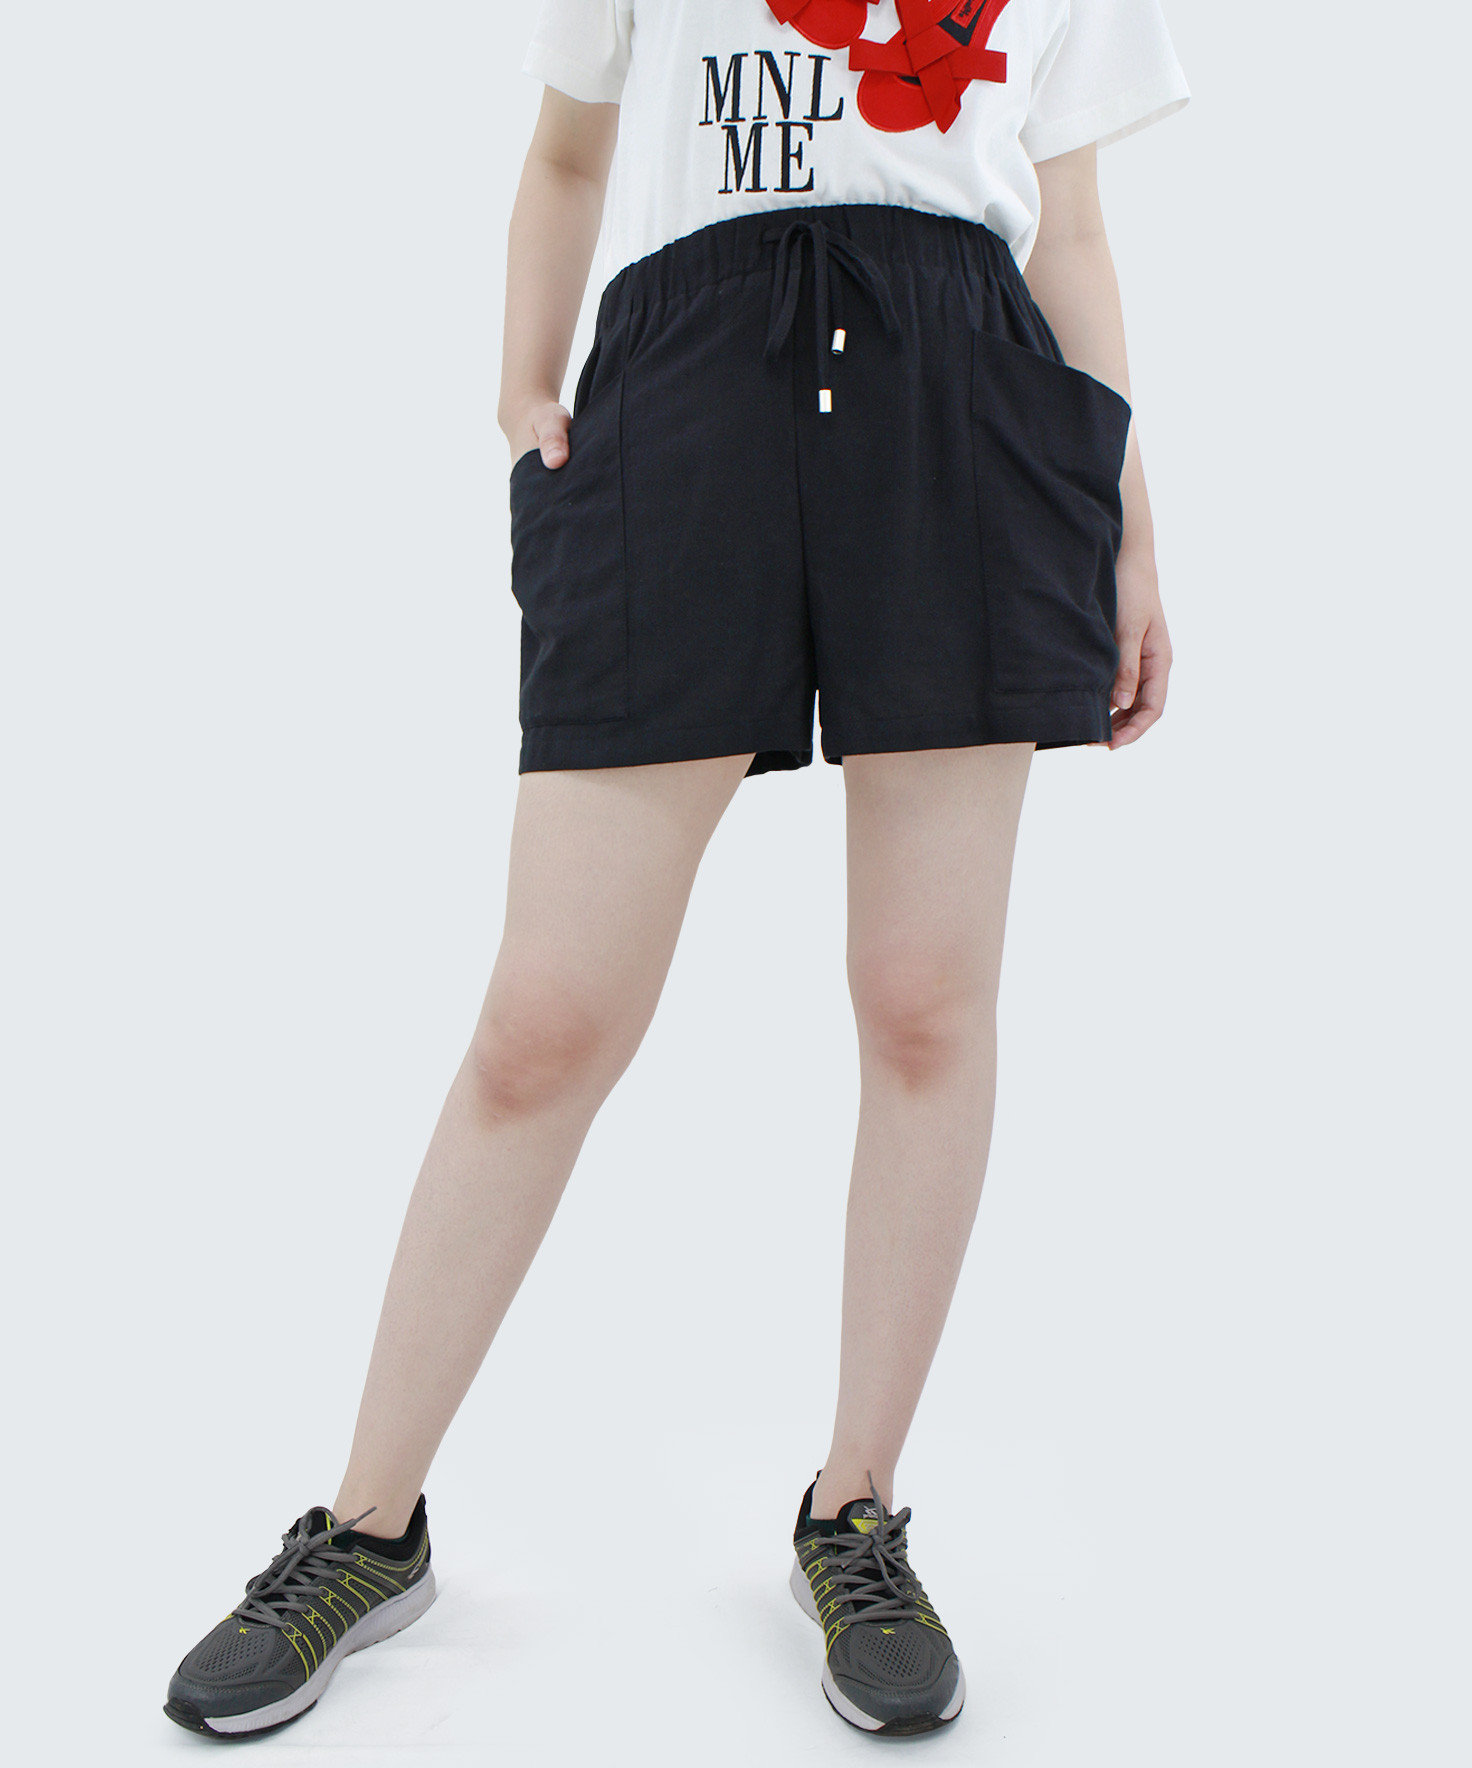 Short Pants Minimal Me Basic Tali